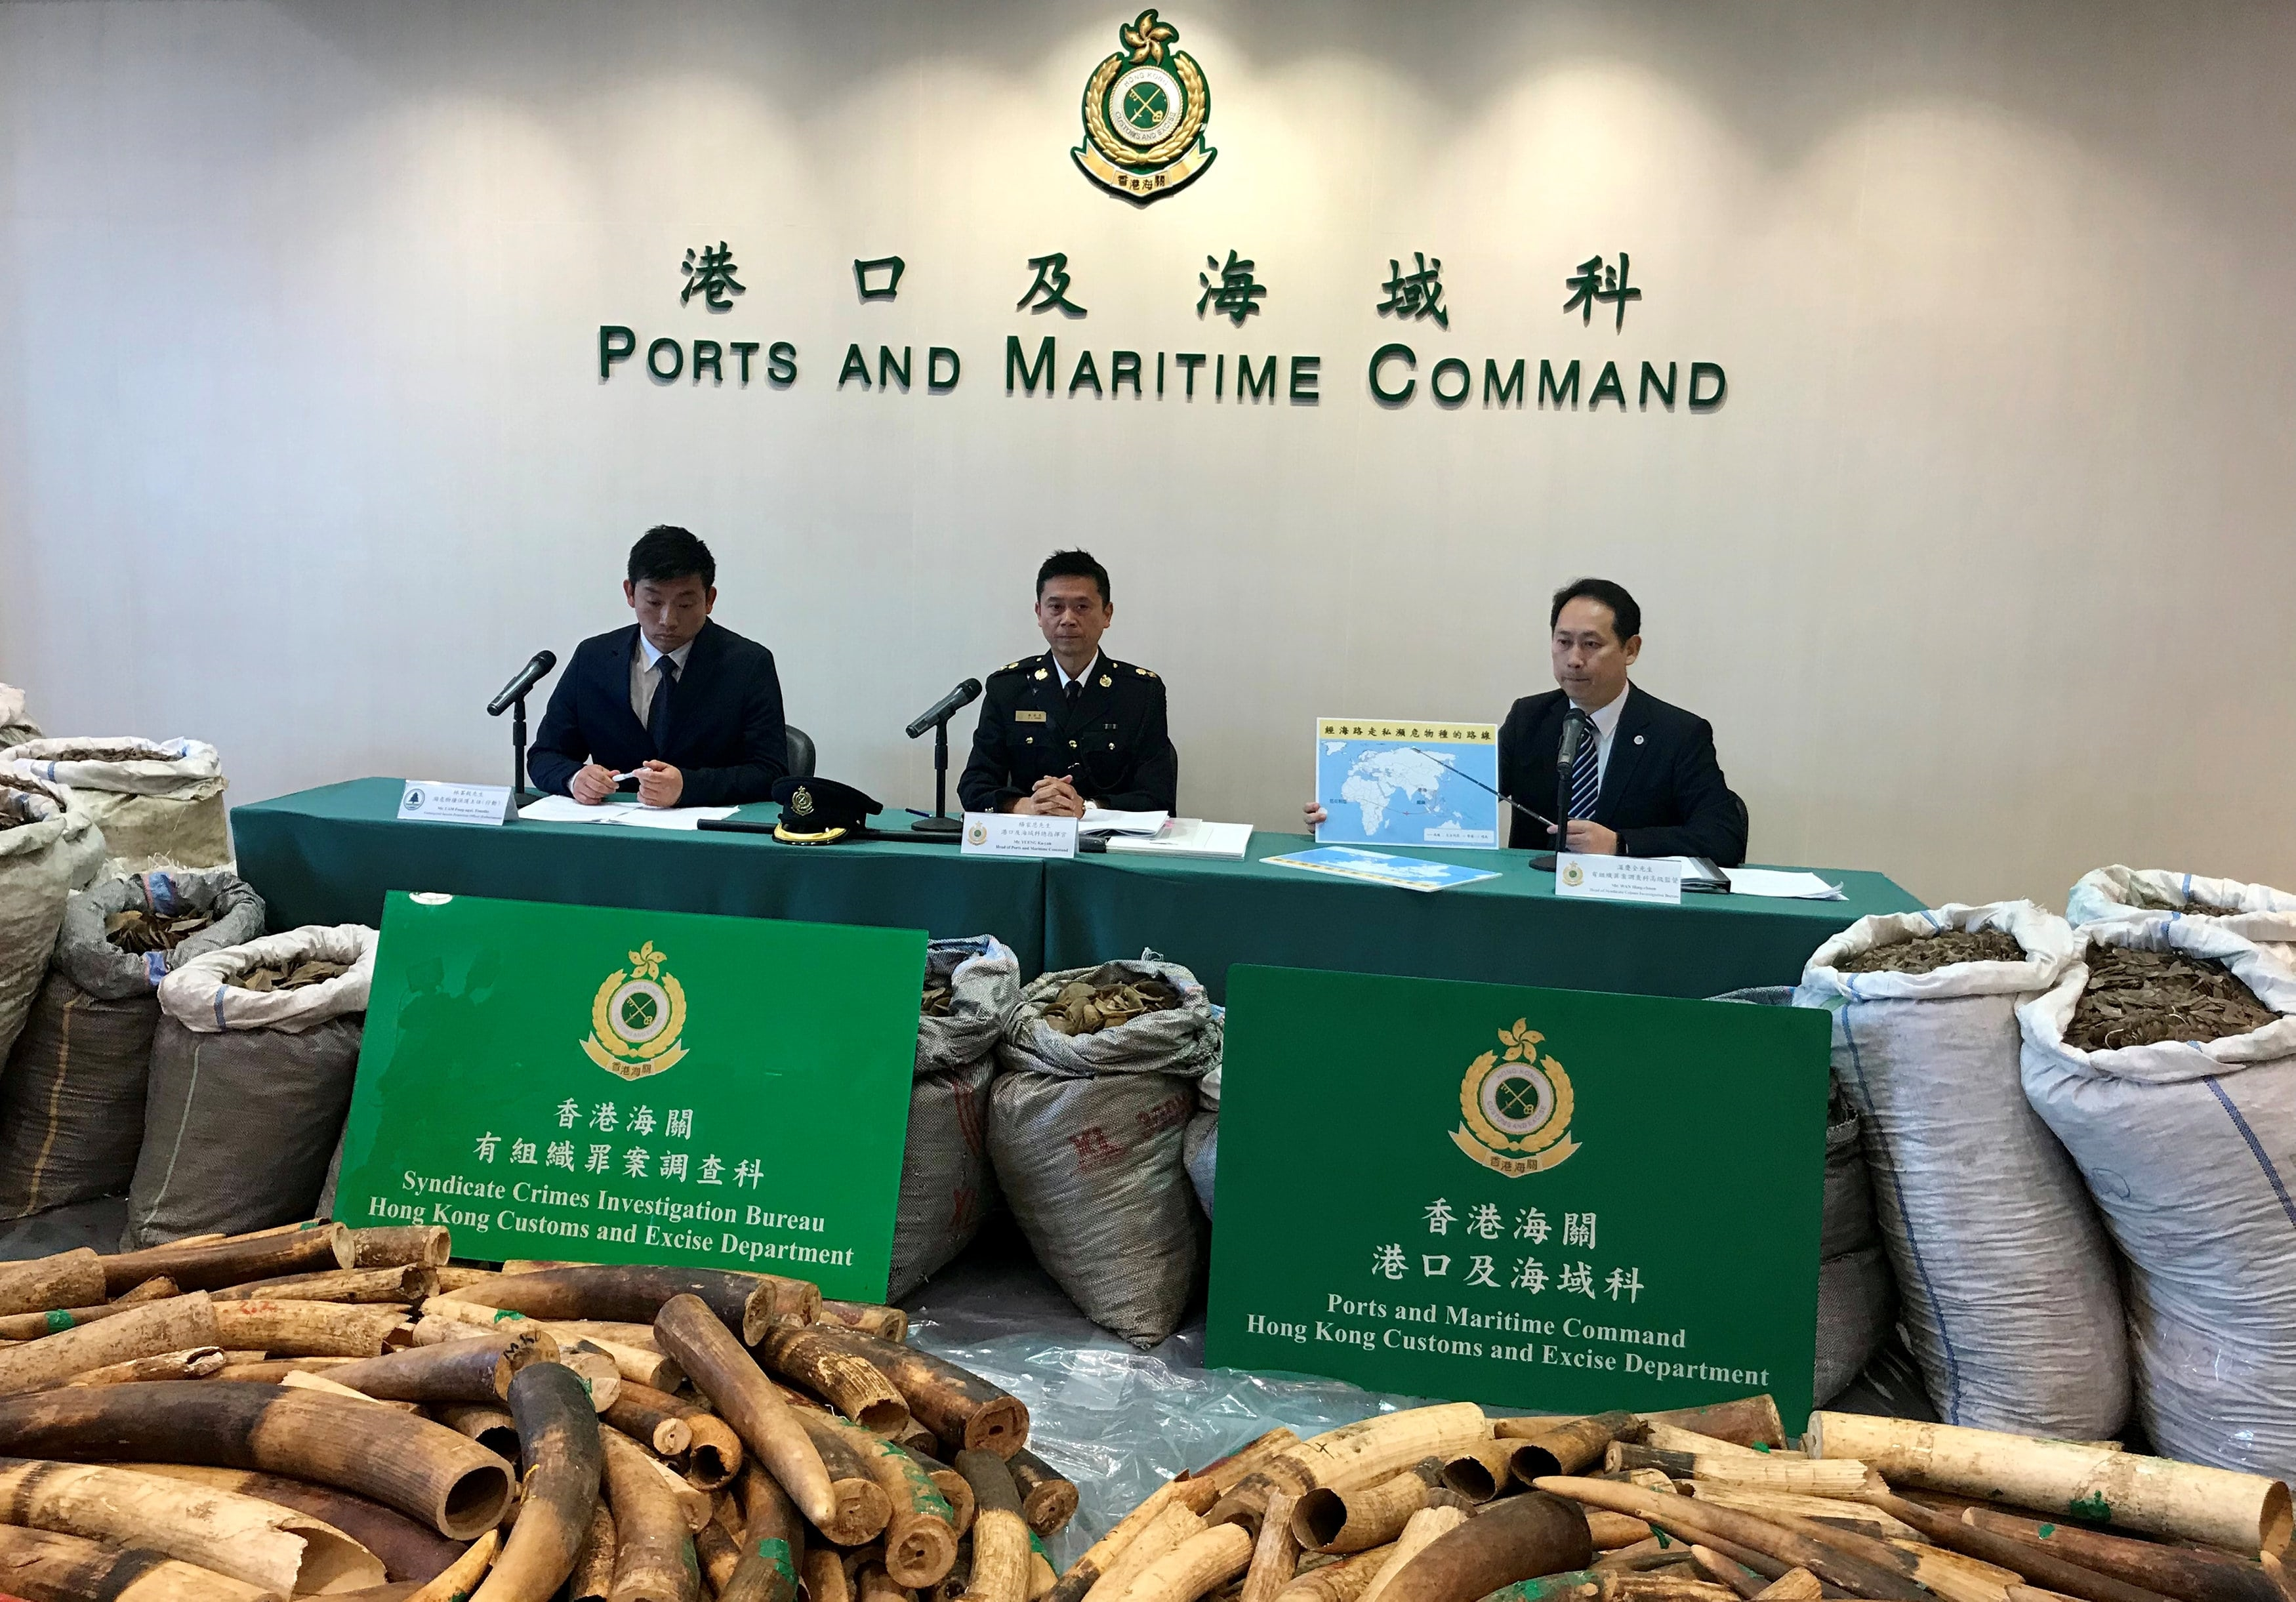 Hong Kong Customs seizes 300 crypto mining GPUs in anti-smuggling operation – Accu-rate